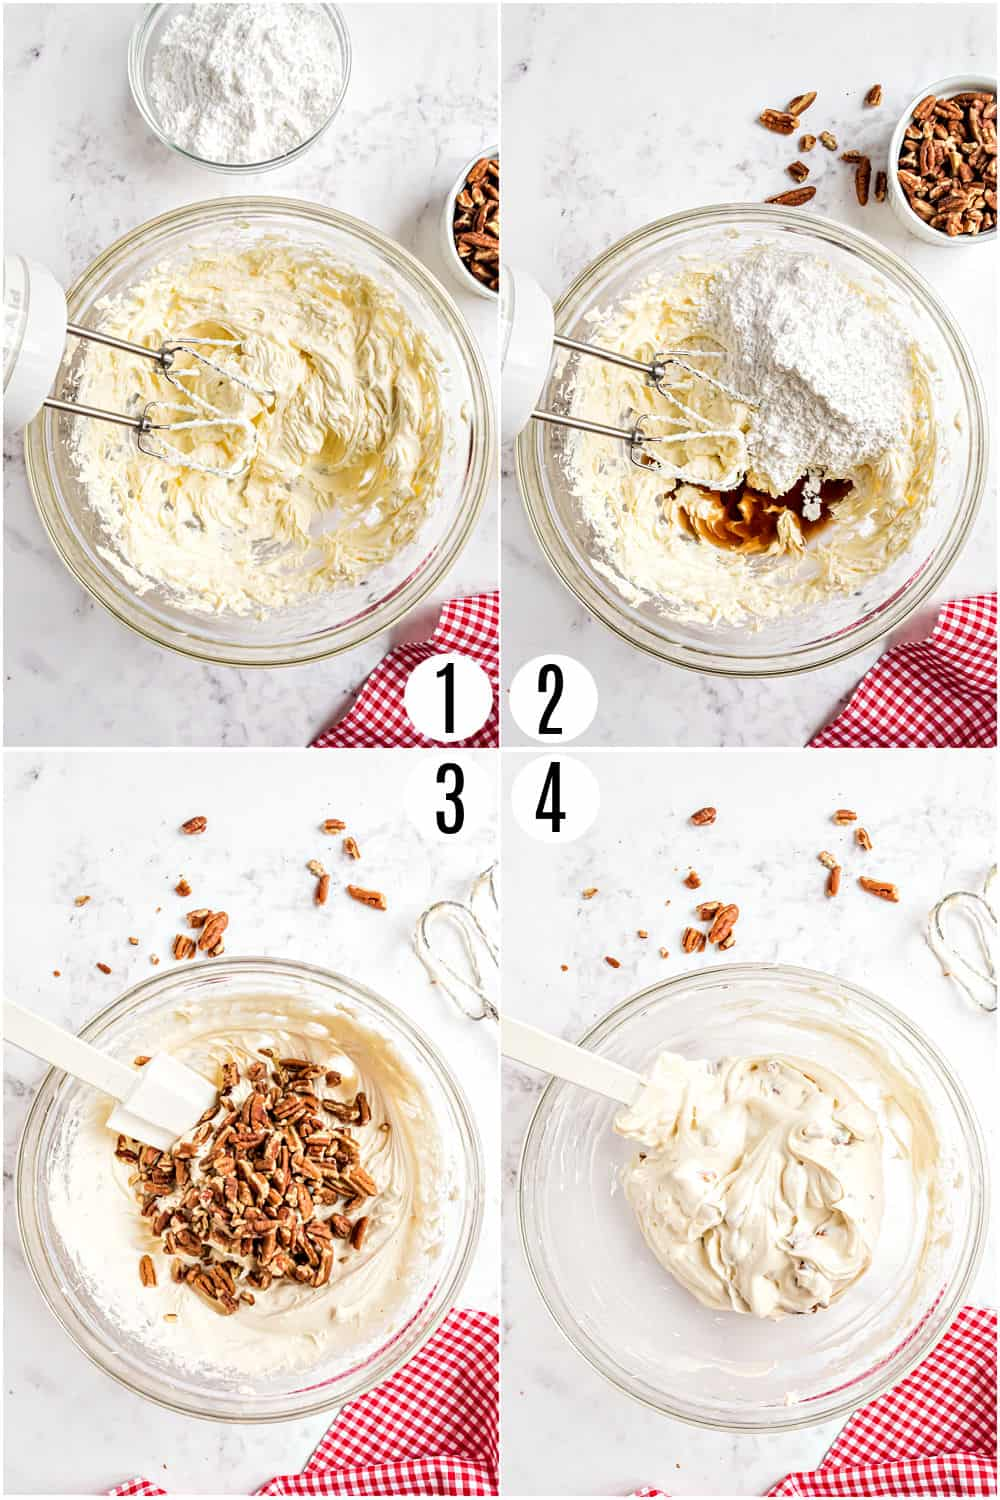 Step by step photos showing how to make cheesecake dip.